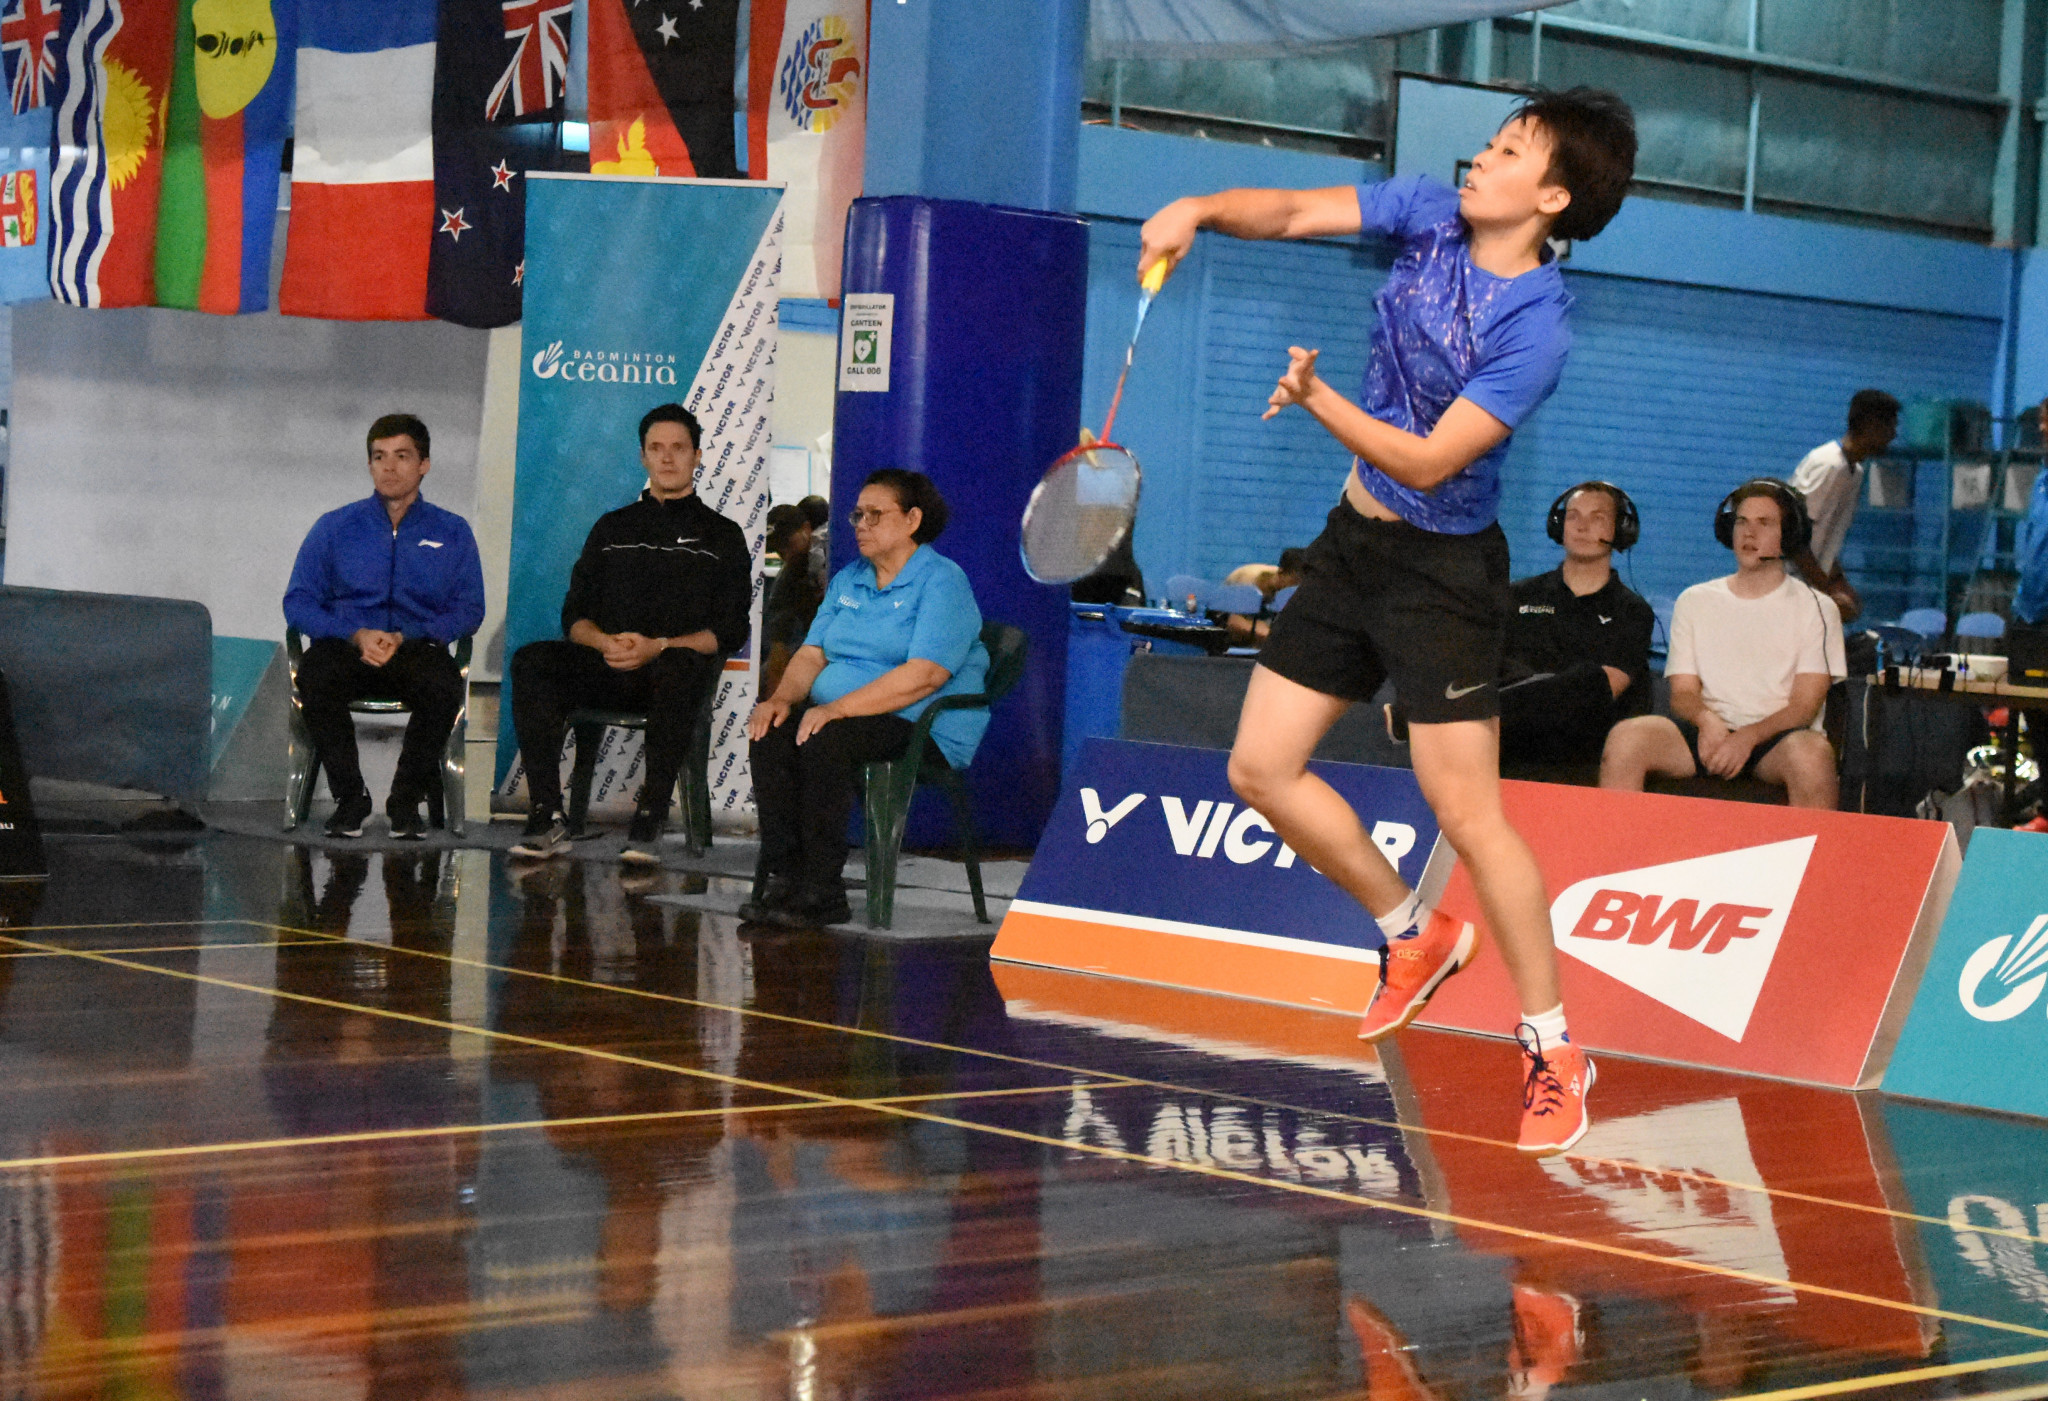 Wendy Chen Hsuan-yu won the women's singles title at the Oceania Badminton Championships for the sixth year in a row ©Ballarat Badminton